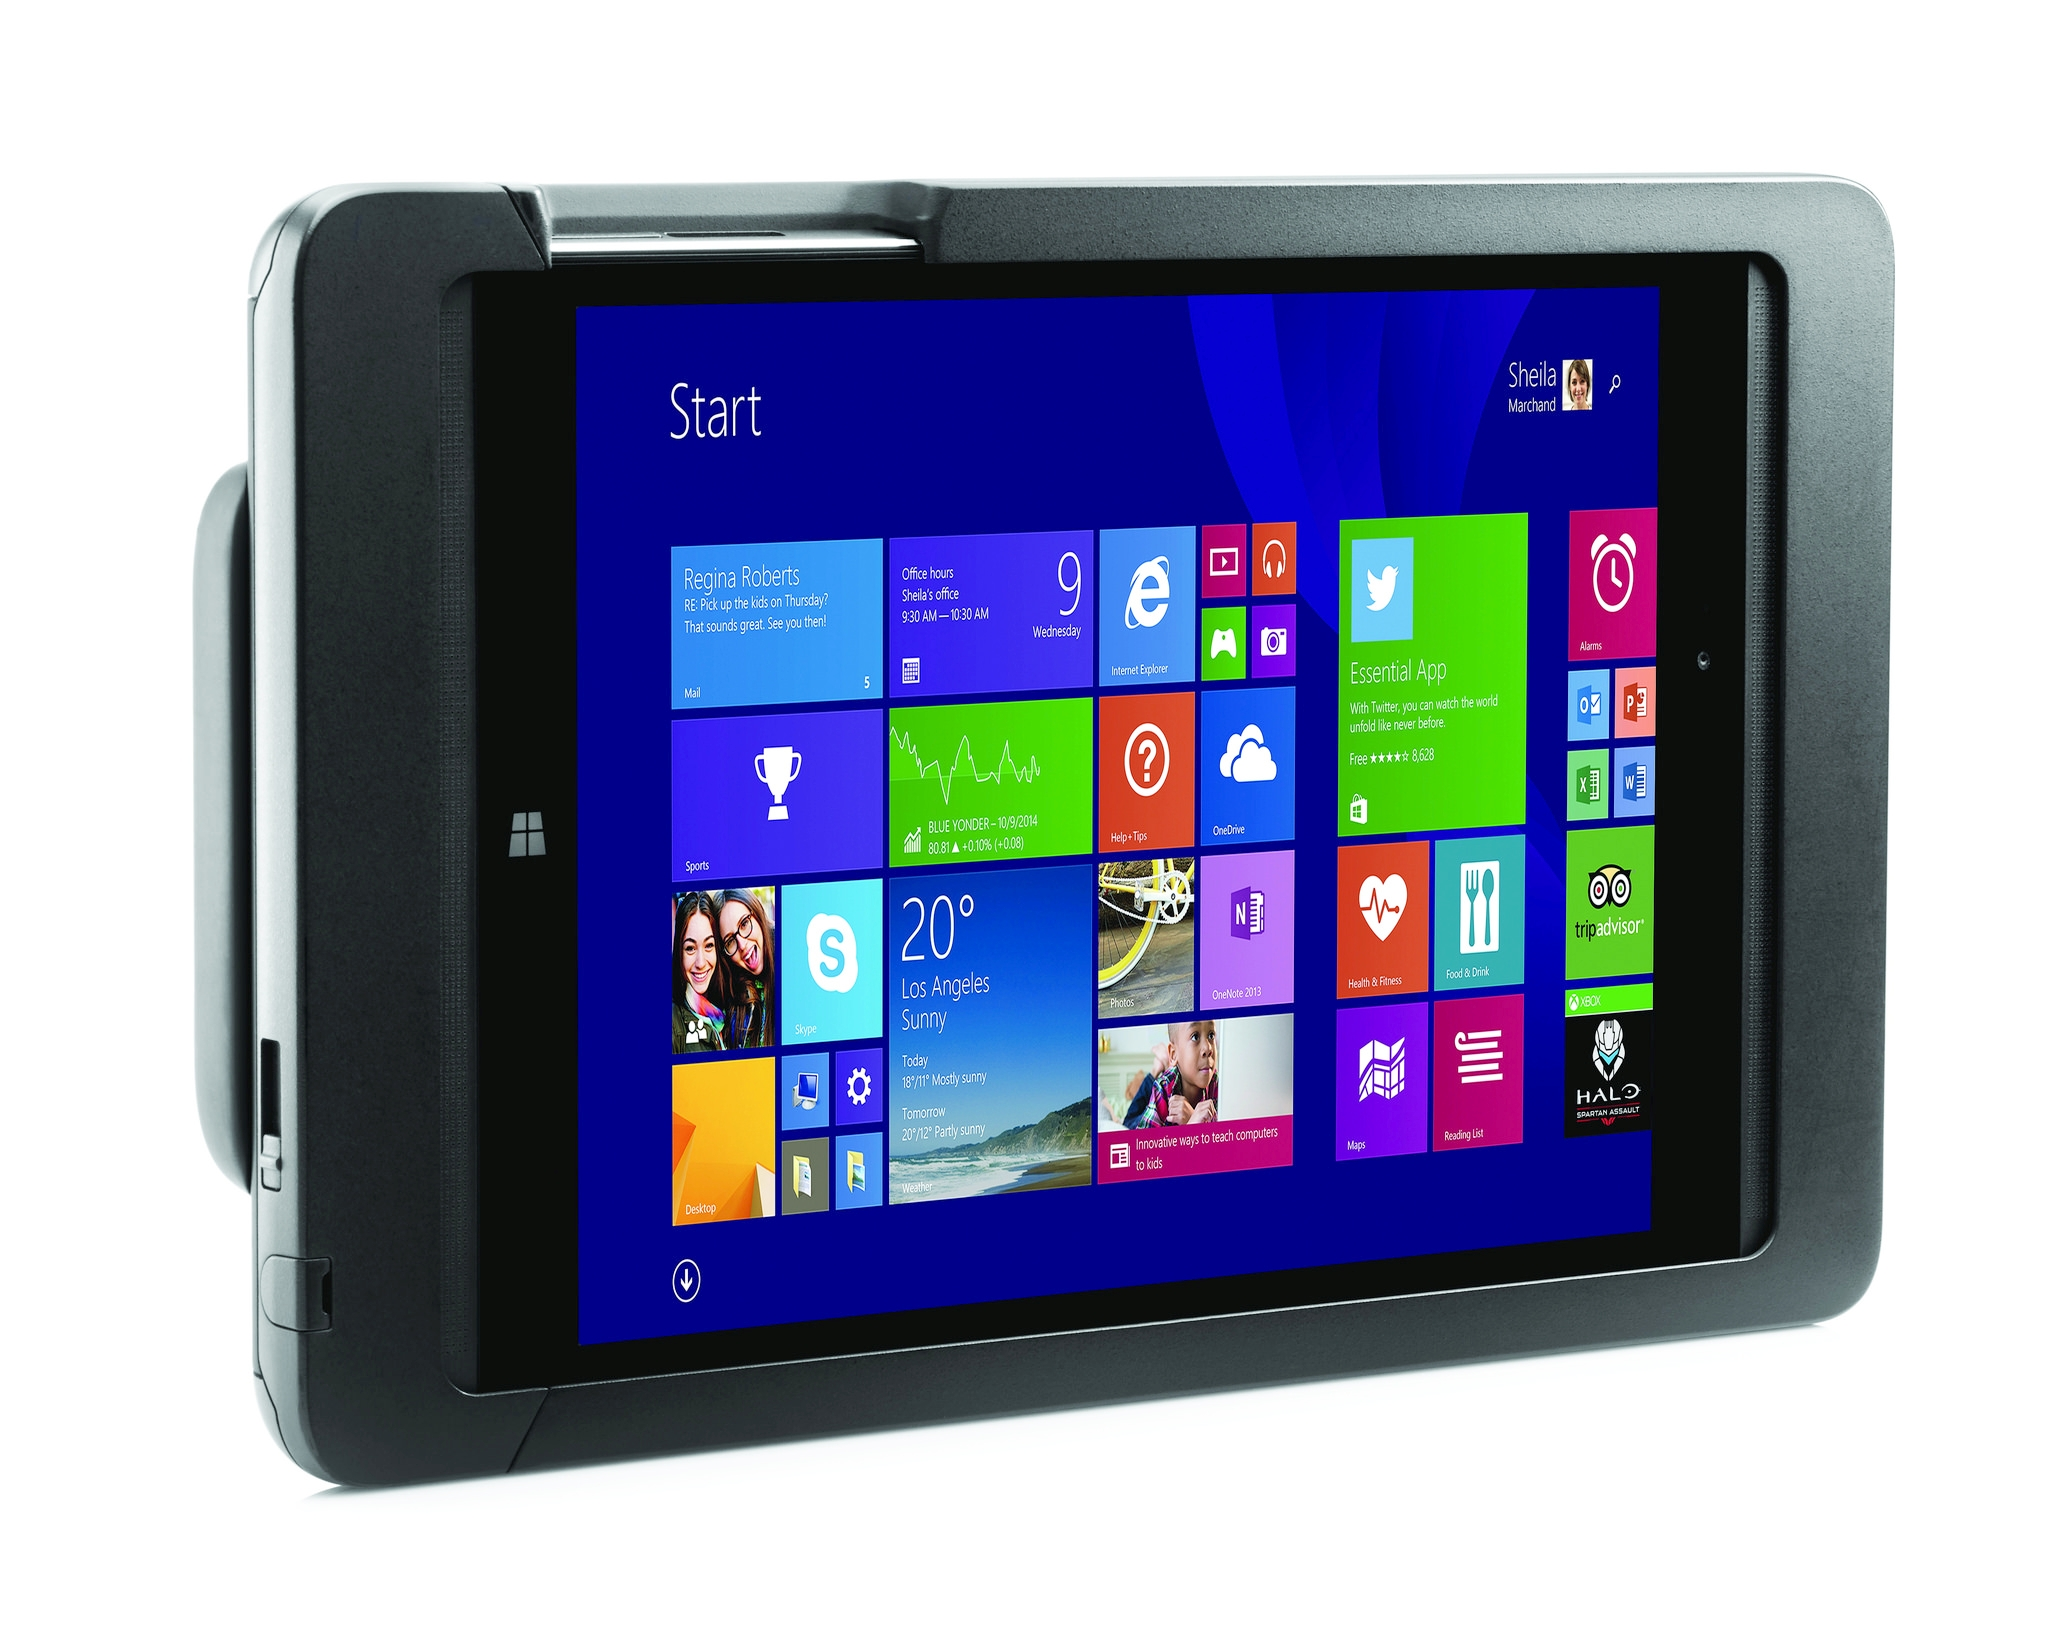 Toshiba 7 Inch Windows Tablet